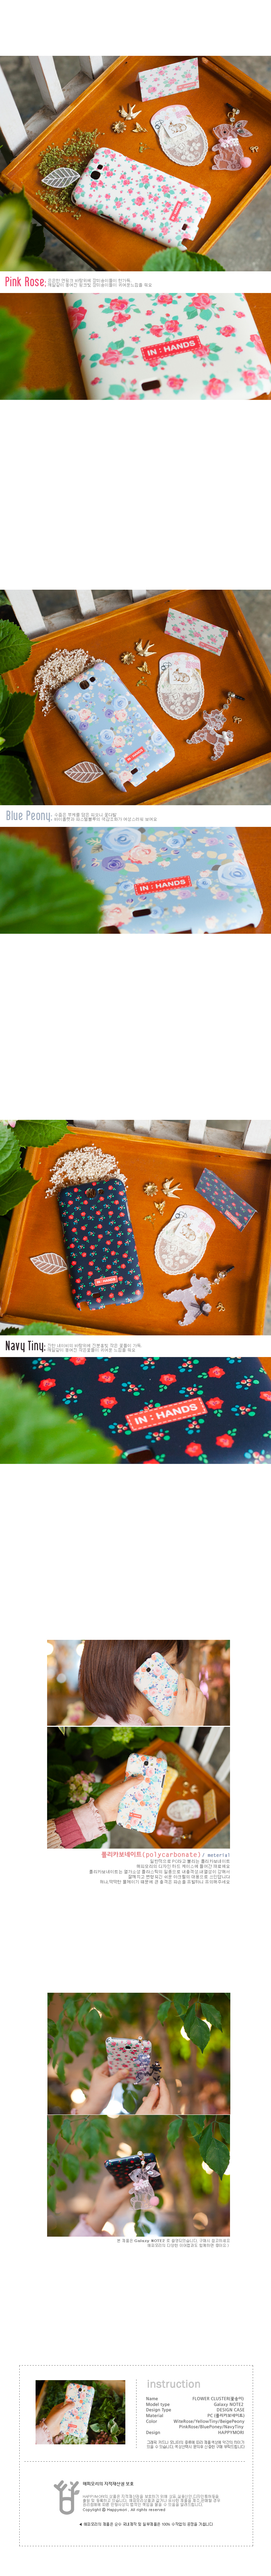 [HAPPYMORI]Hard Case_Blossom(iPhone5_5s,iPhone6,Galaxy S3,Galaxy S4,Galaxy S5,Galaxy S6,Galaxy S6 Edge)